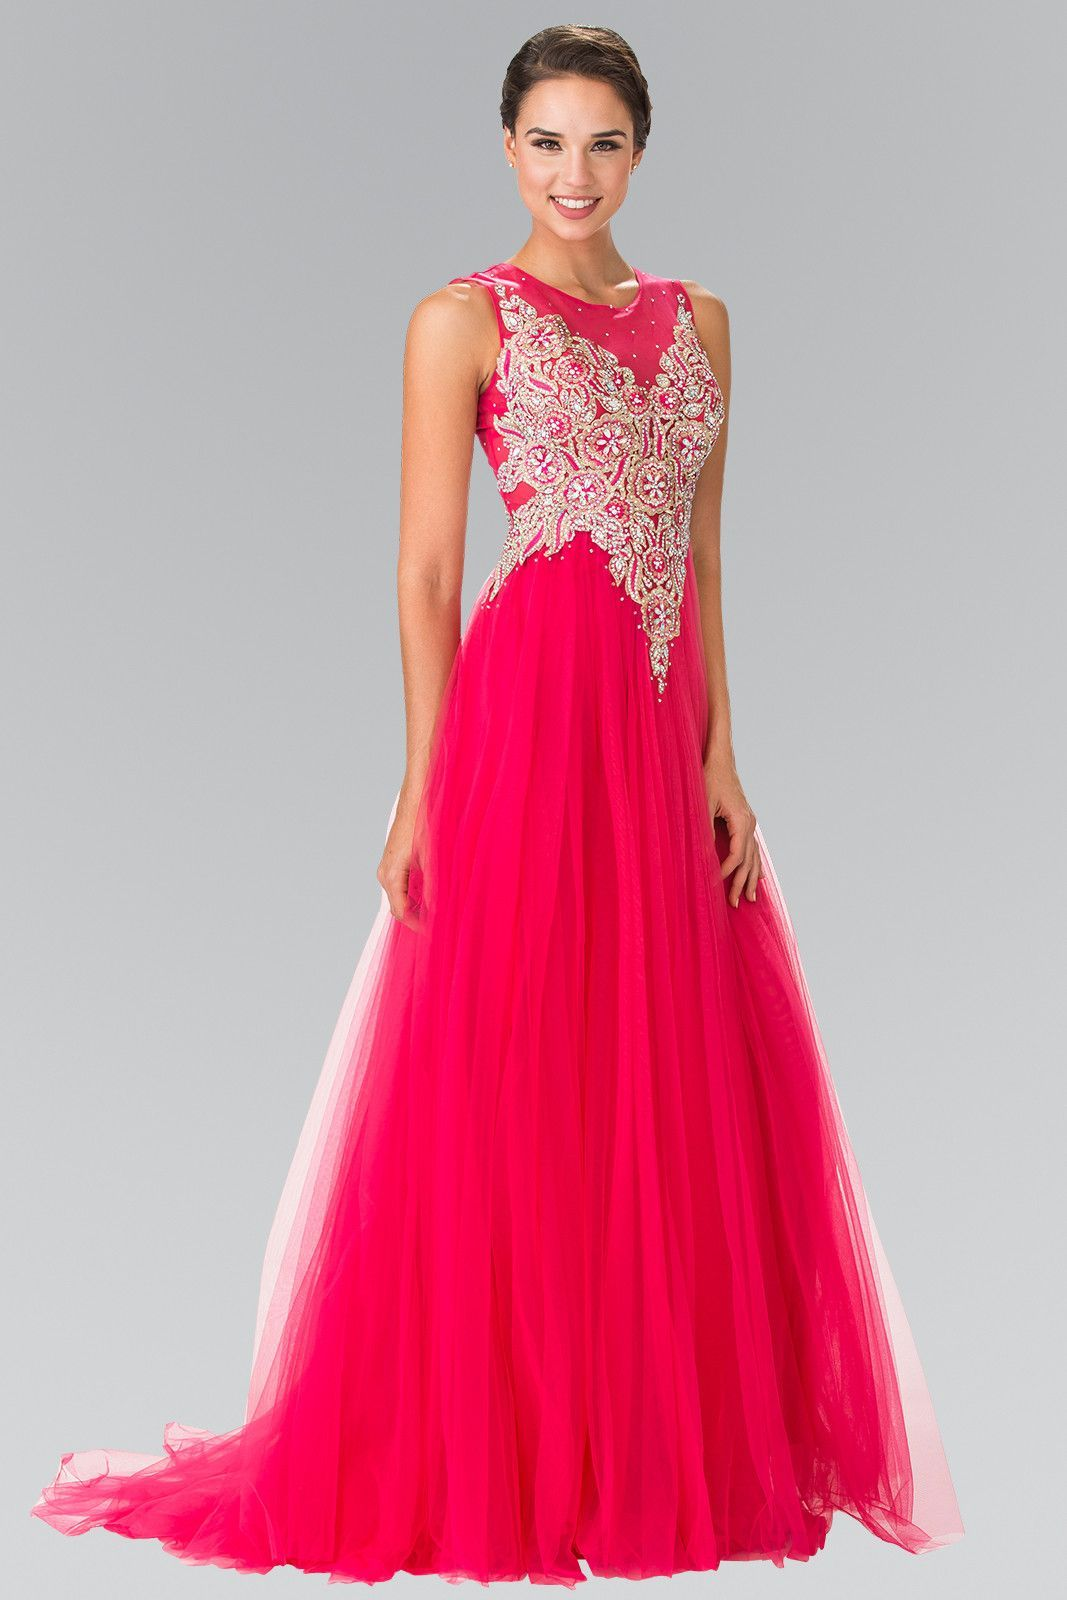 Sleeveless Bead Embroidered Illusion Dress by Elizabeth K GL2317